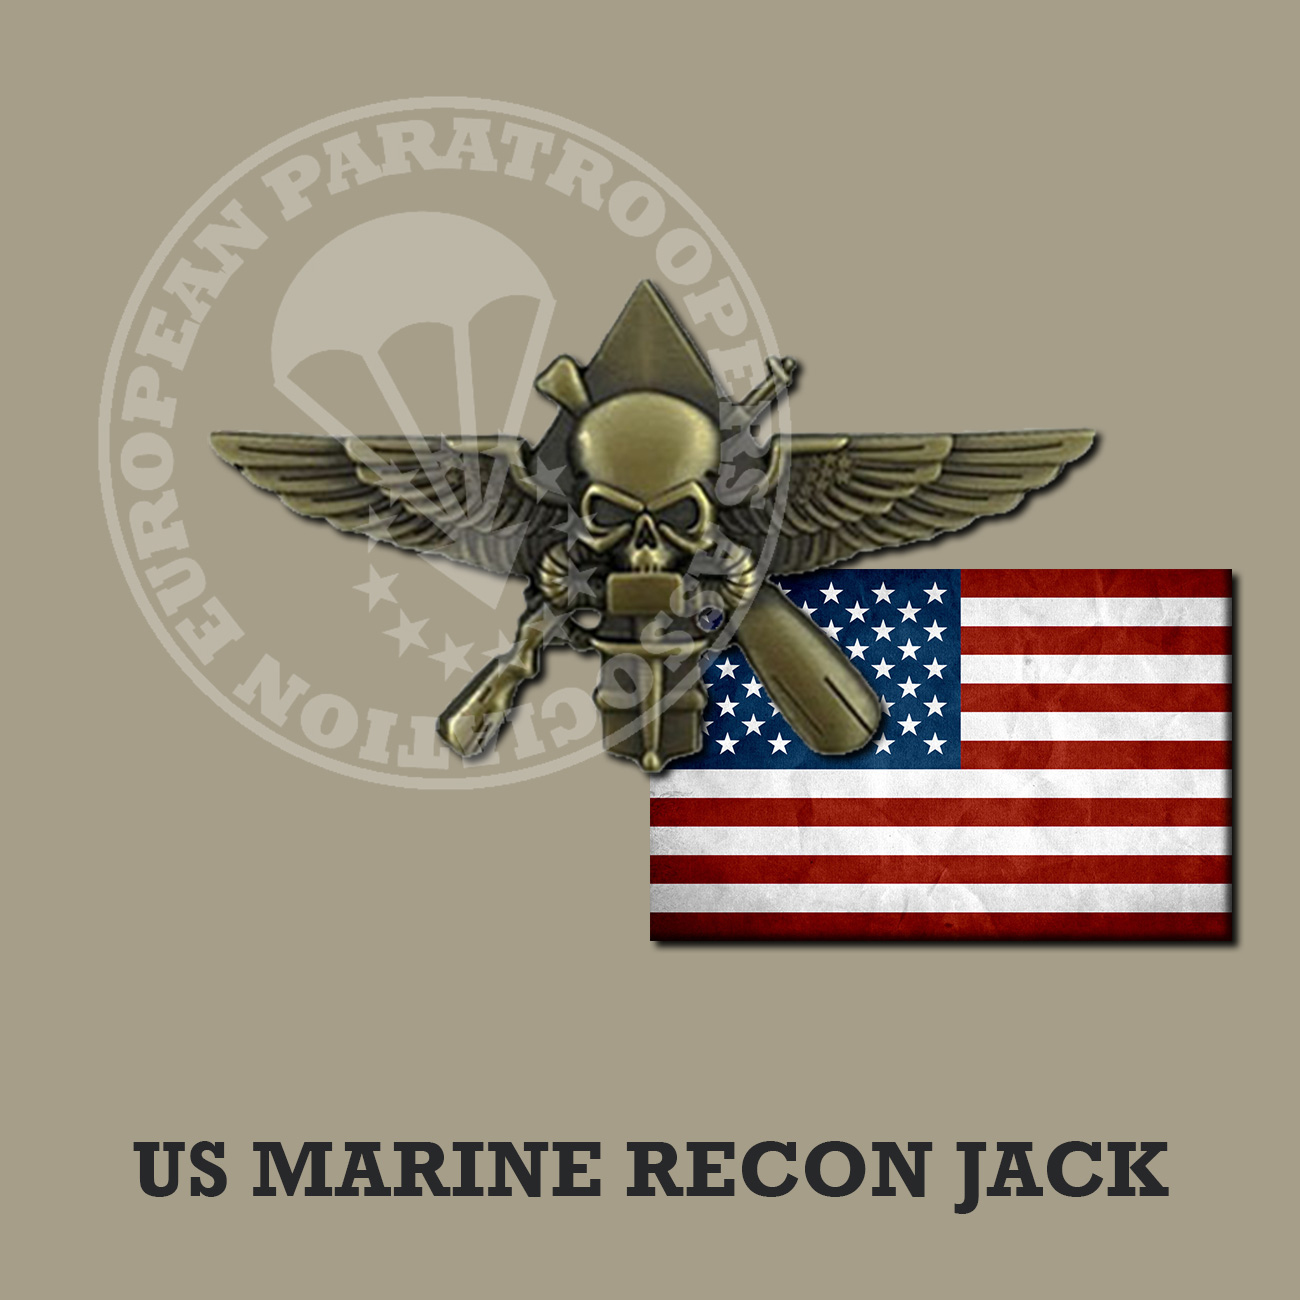 US MARINE RECON JACK BADGE